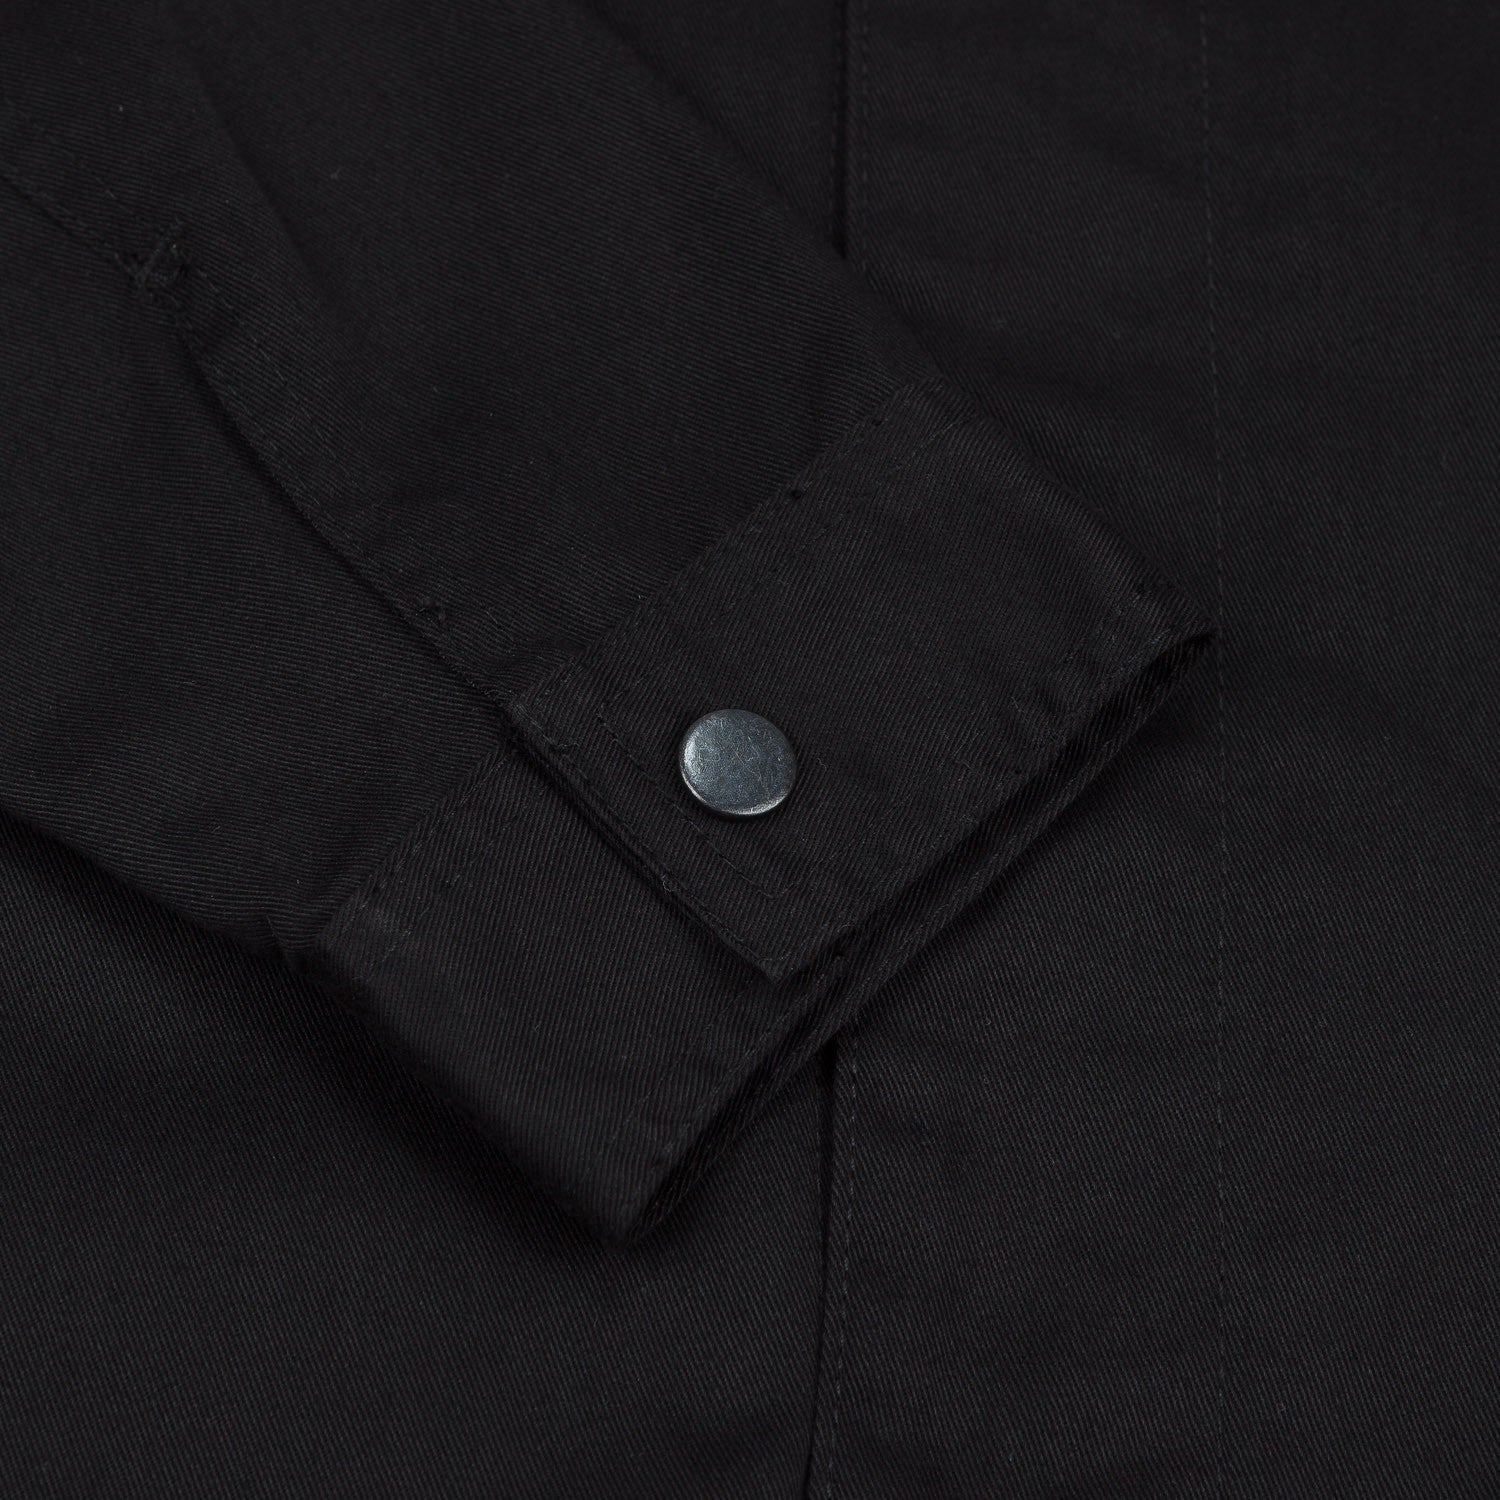 Rip N Dip Lord Nermal Jacket - Black